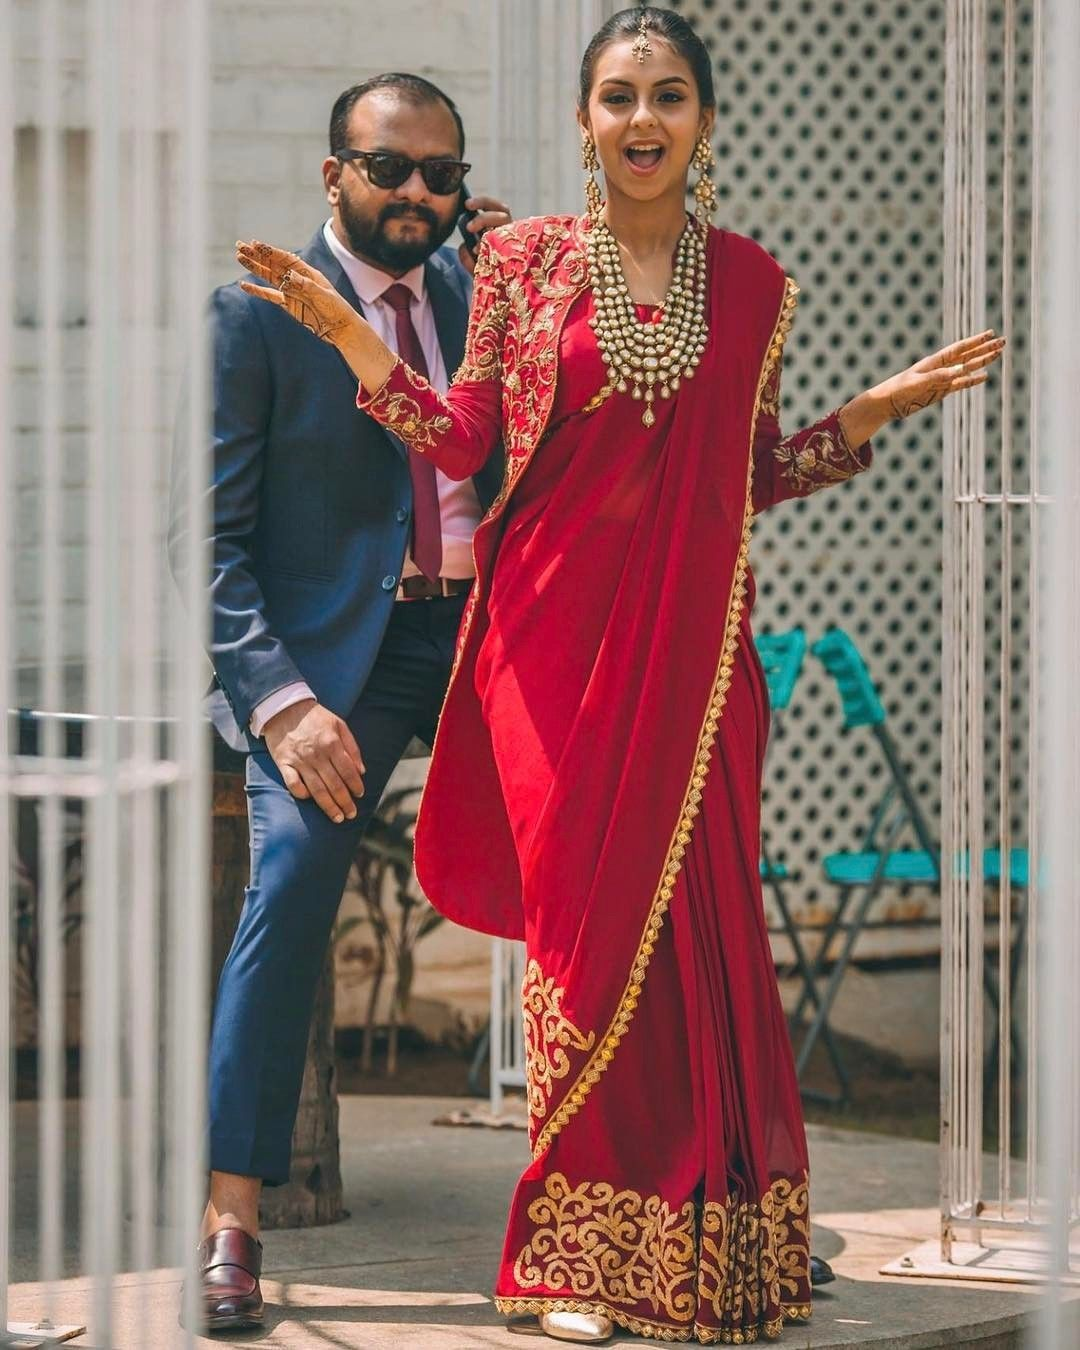 6 Modern Ways To Style Your Traditional Saree In 2018 Indian Jfashion Etchnic Long Tunik Fashion Elegan Shareen Every Wednesday Our Askusanythingweddings Session On Instagram A Lot Of You Have Been Asking Us How With Contemporary